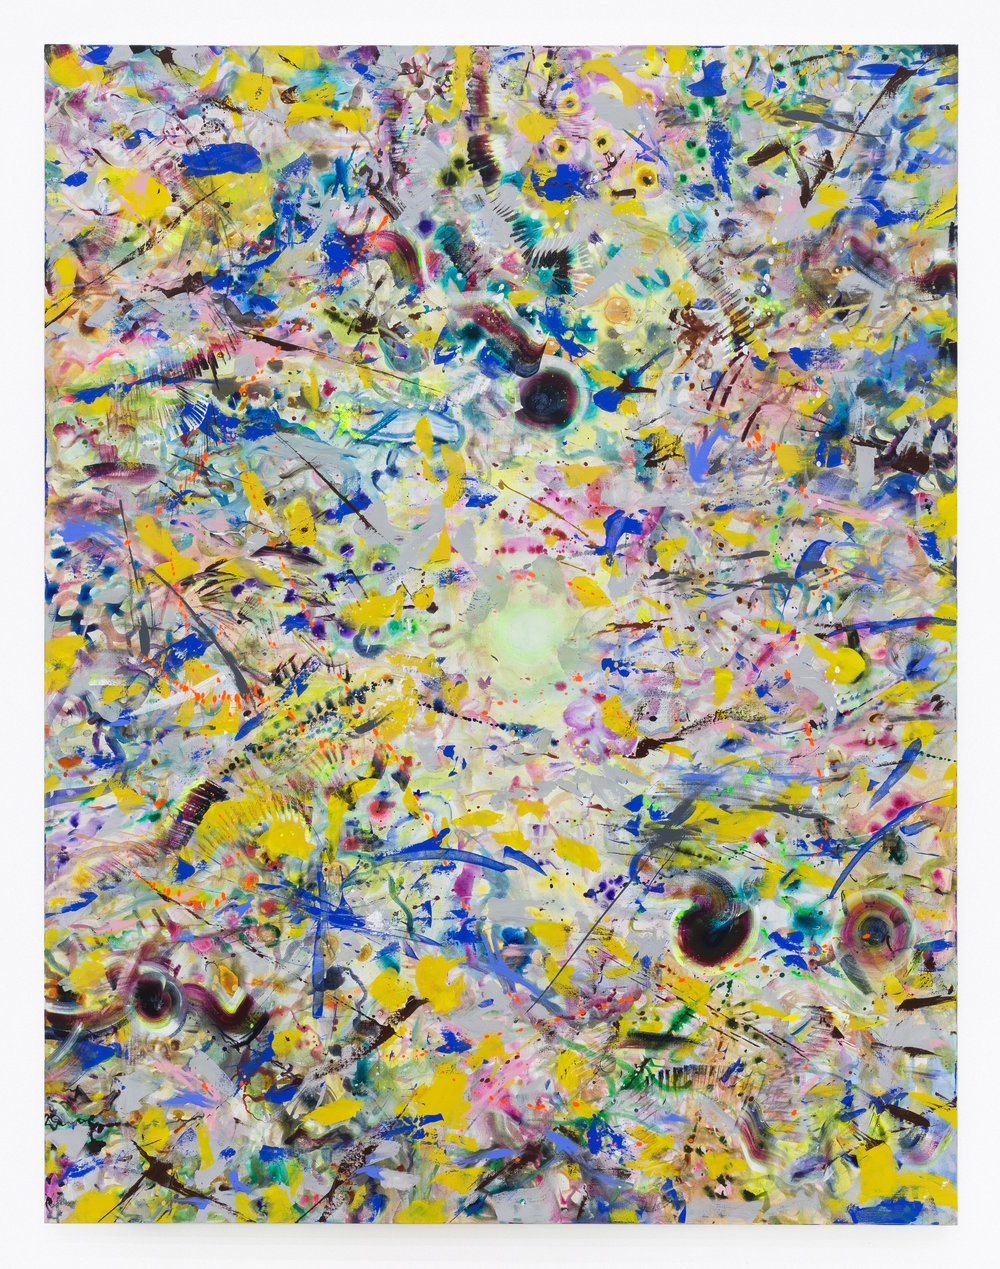 Wang Haiyang,  Untouchable #9 , 2017, Acrylic on canvas, 260 x 200 cm.